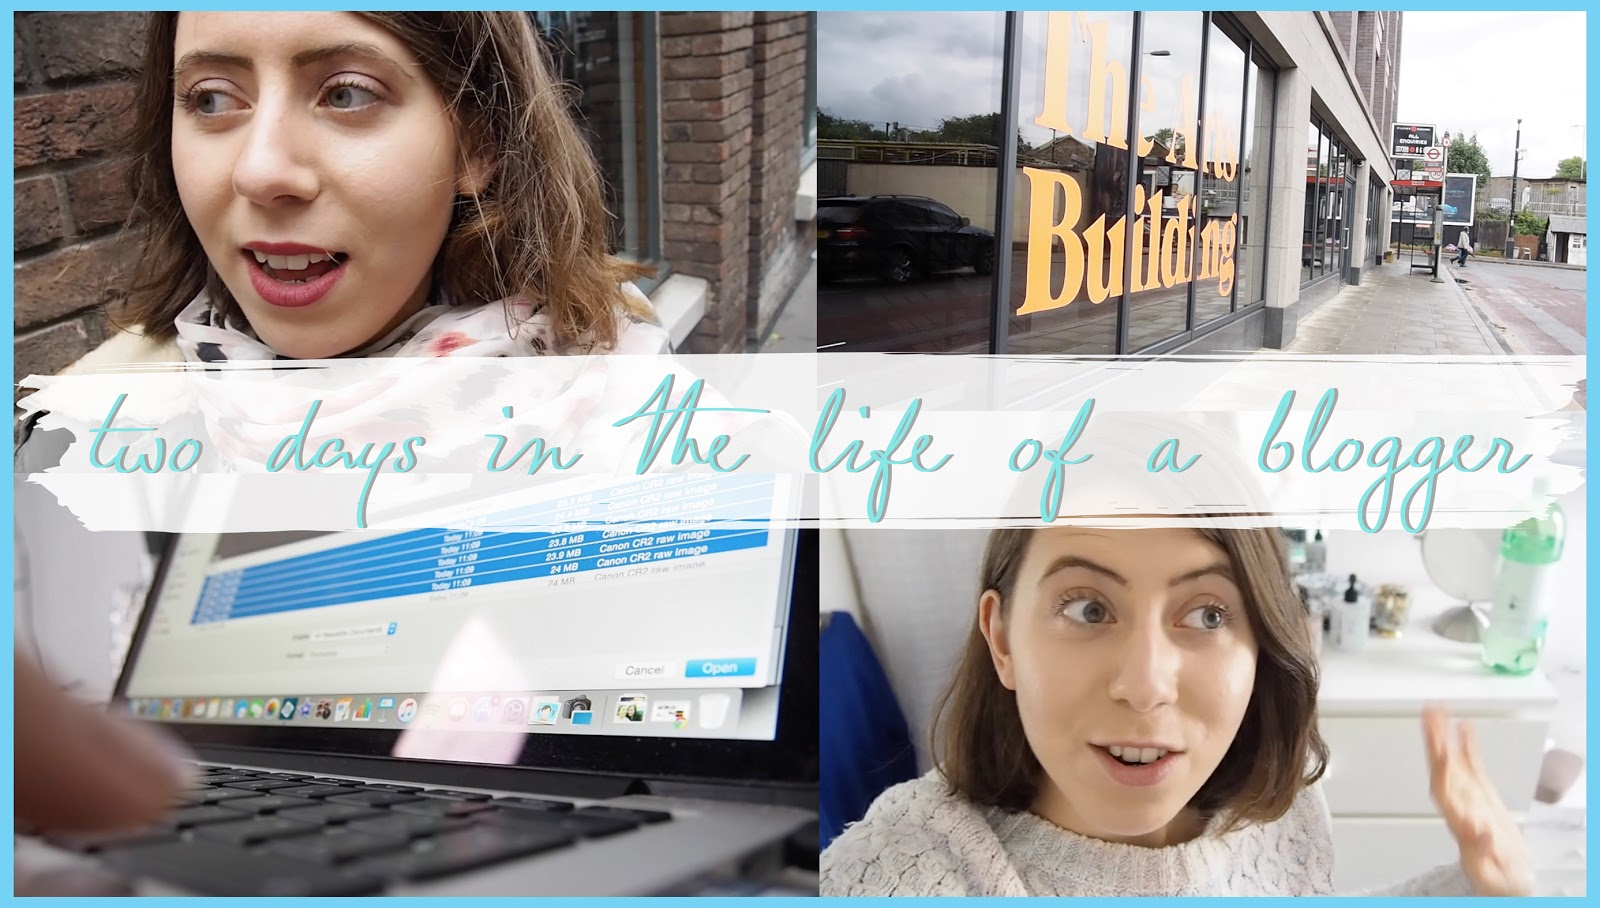 THE VIDEO: TWO DAYS IN THE LIFE OF A BLOGGER